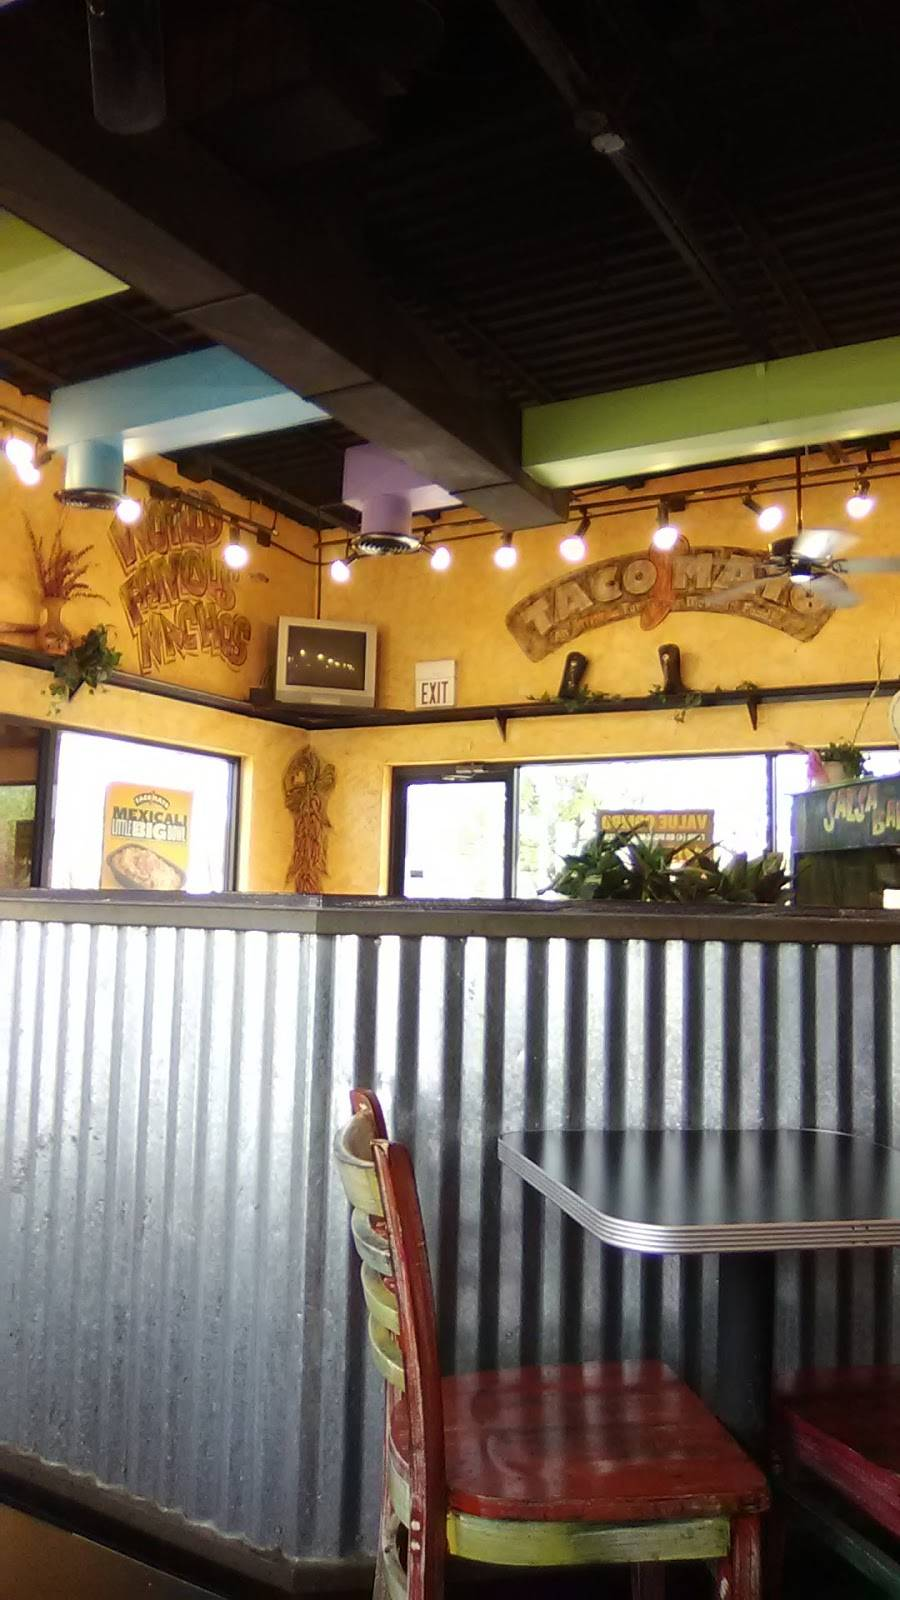 Taco Mayo | restaurant | 101 E. Highway St, Holdenville, OK 74848, USA | 4053793838 OR +1 405-379-3838